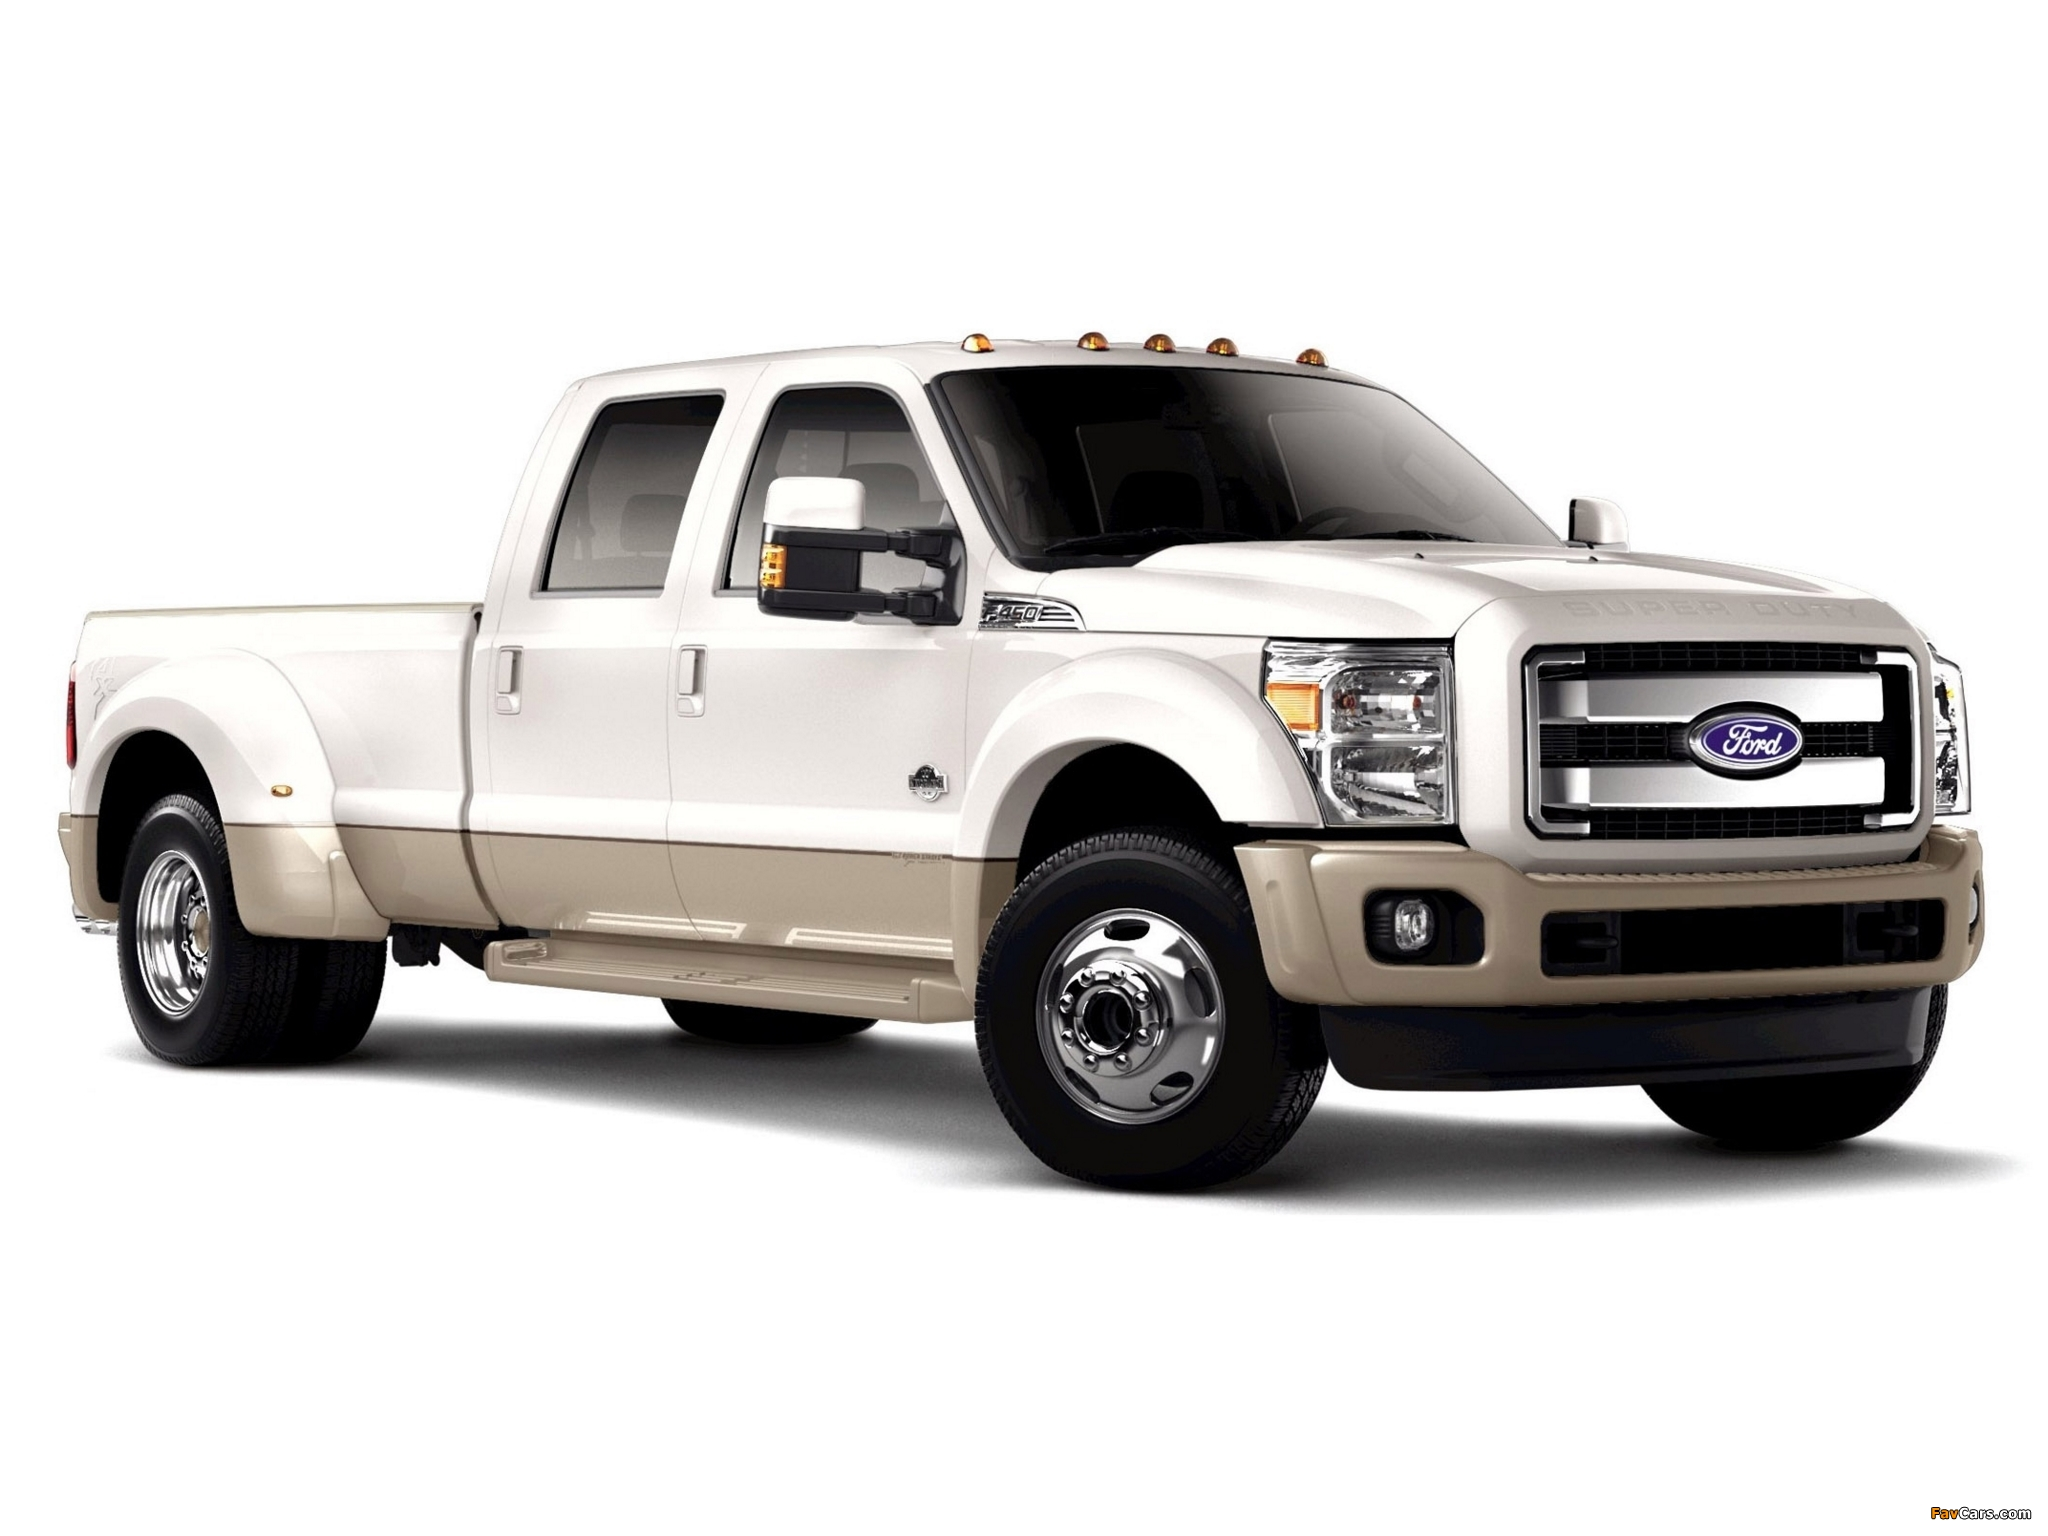 2010 Ford F-450 Super Duty #17